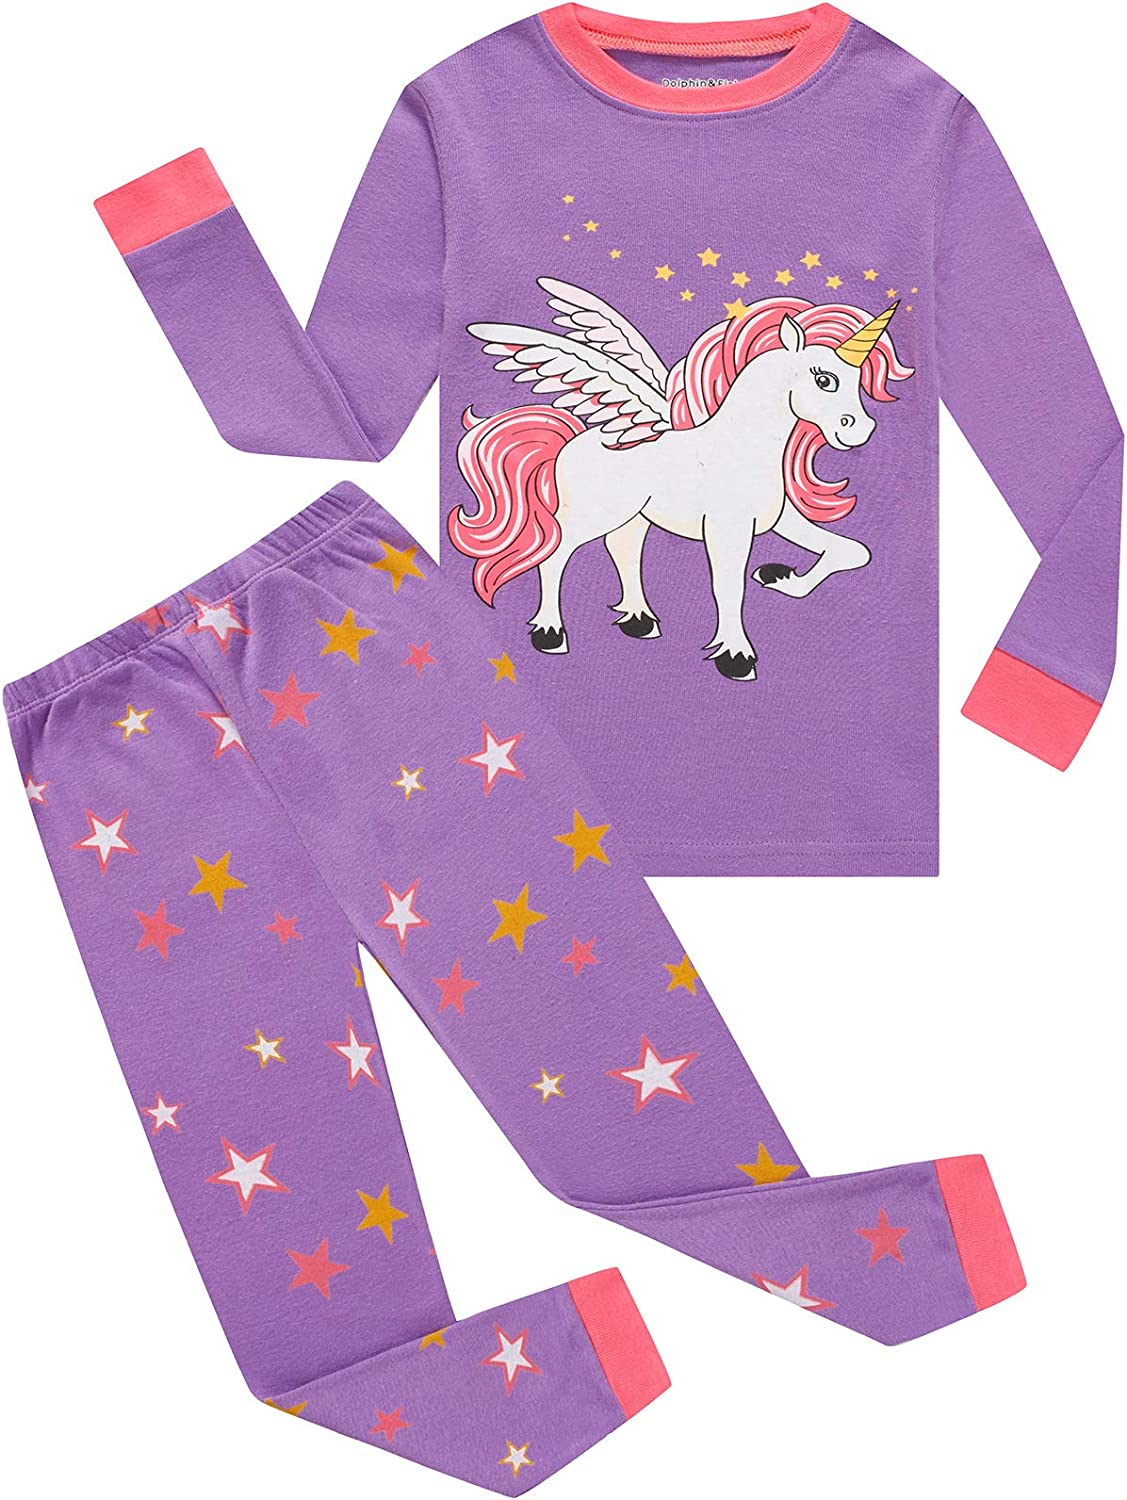 Dolphin/&Fish Girls Pajamas Family Matching Christmas Holiday Pjs Toddler Sleepwear